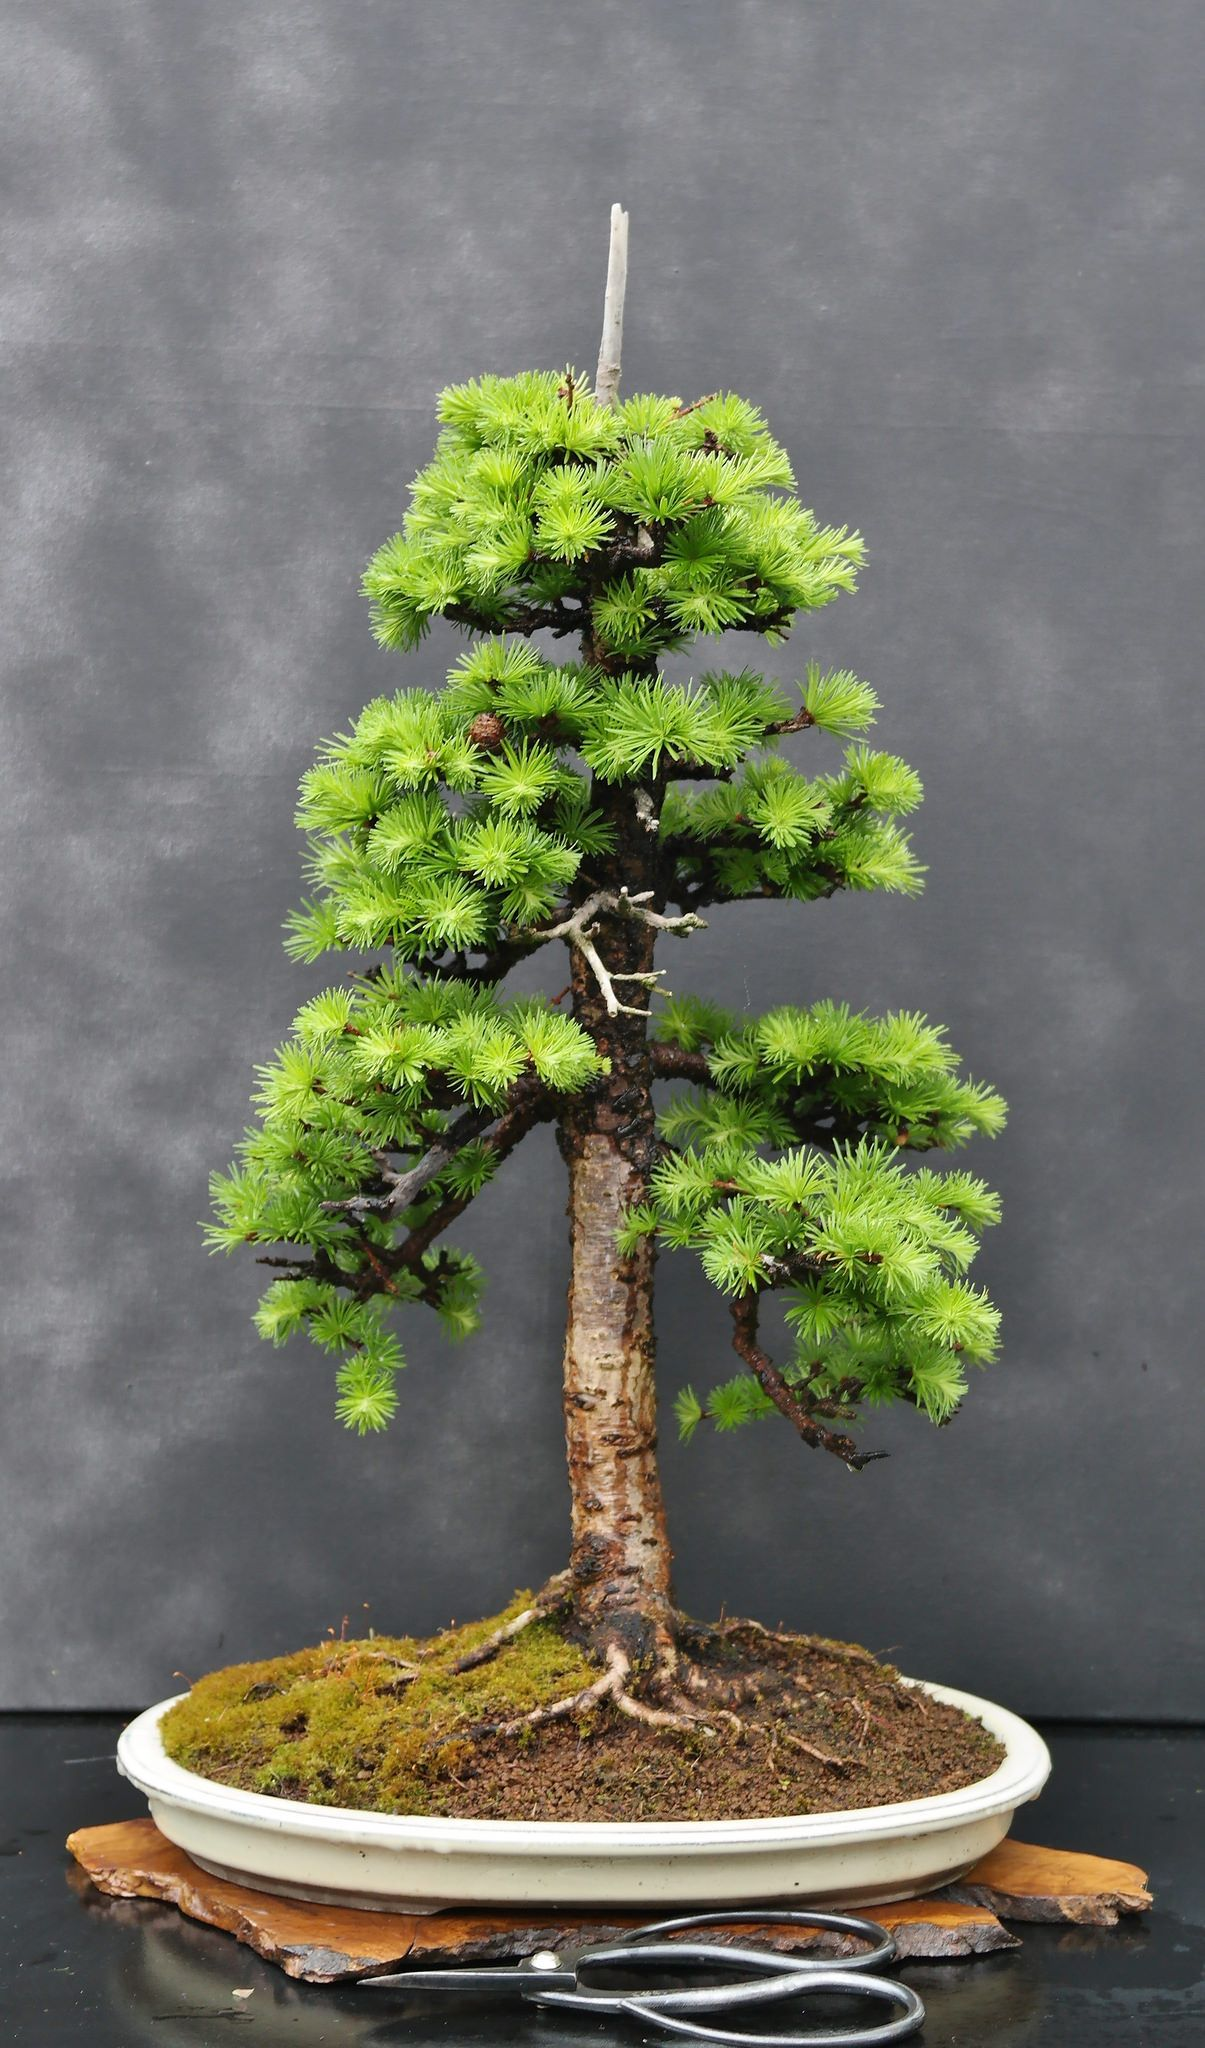 How To Start A Bonsai Tree The Diy Blog Jardins Plante Exterieur Et Beautiful